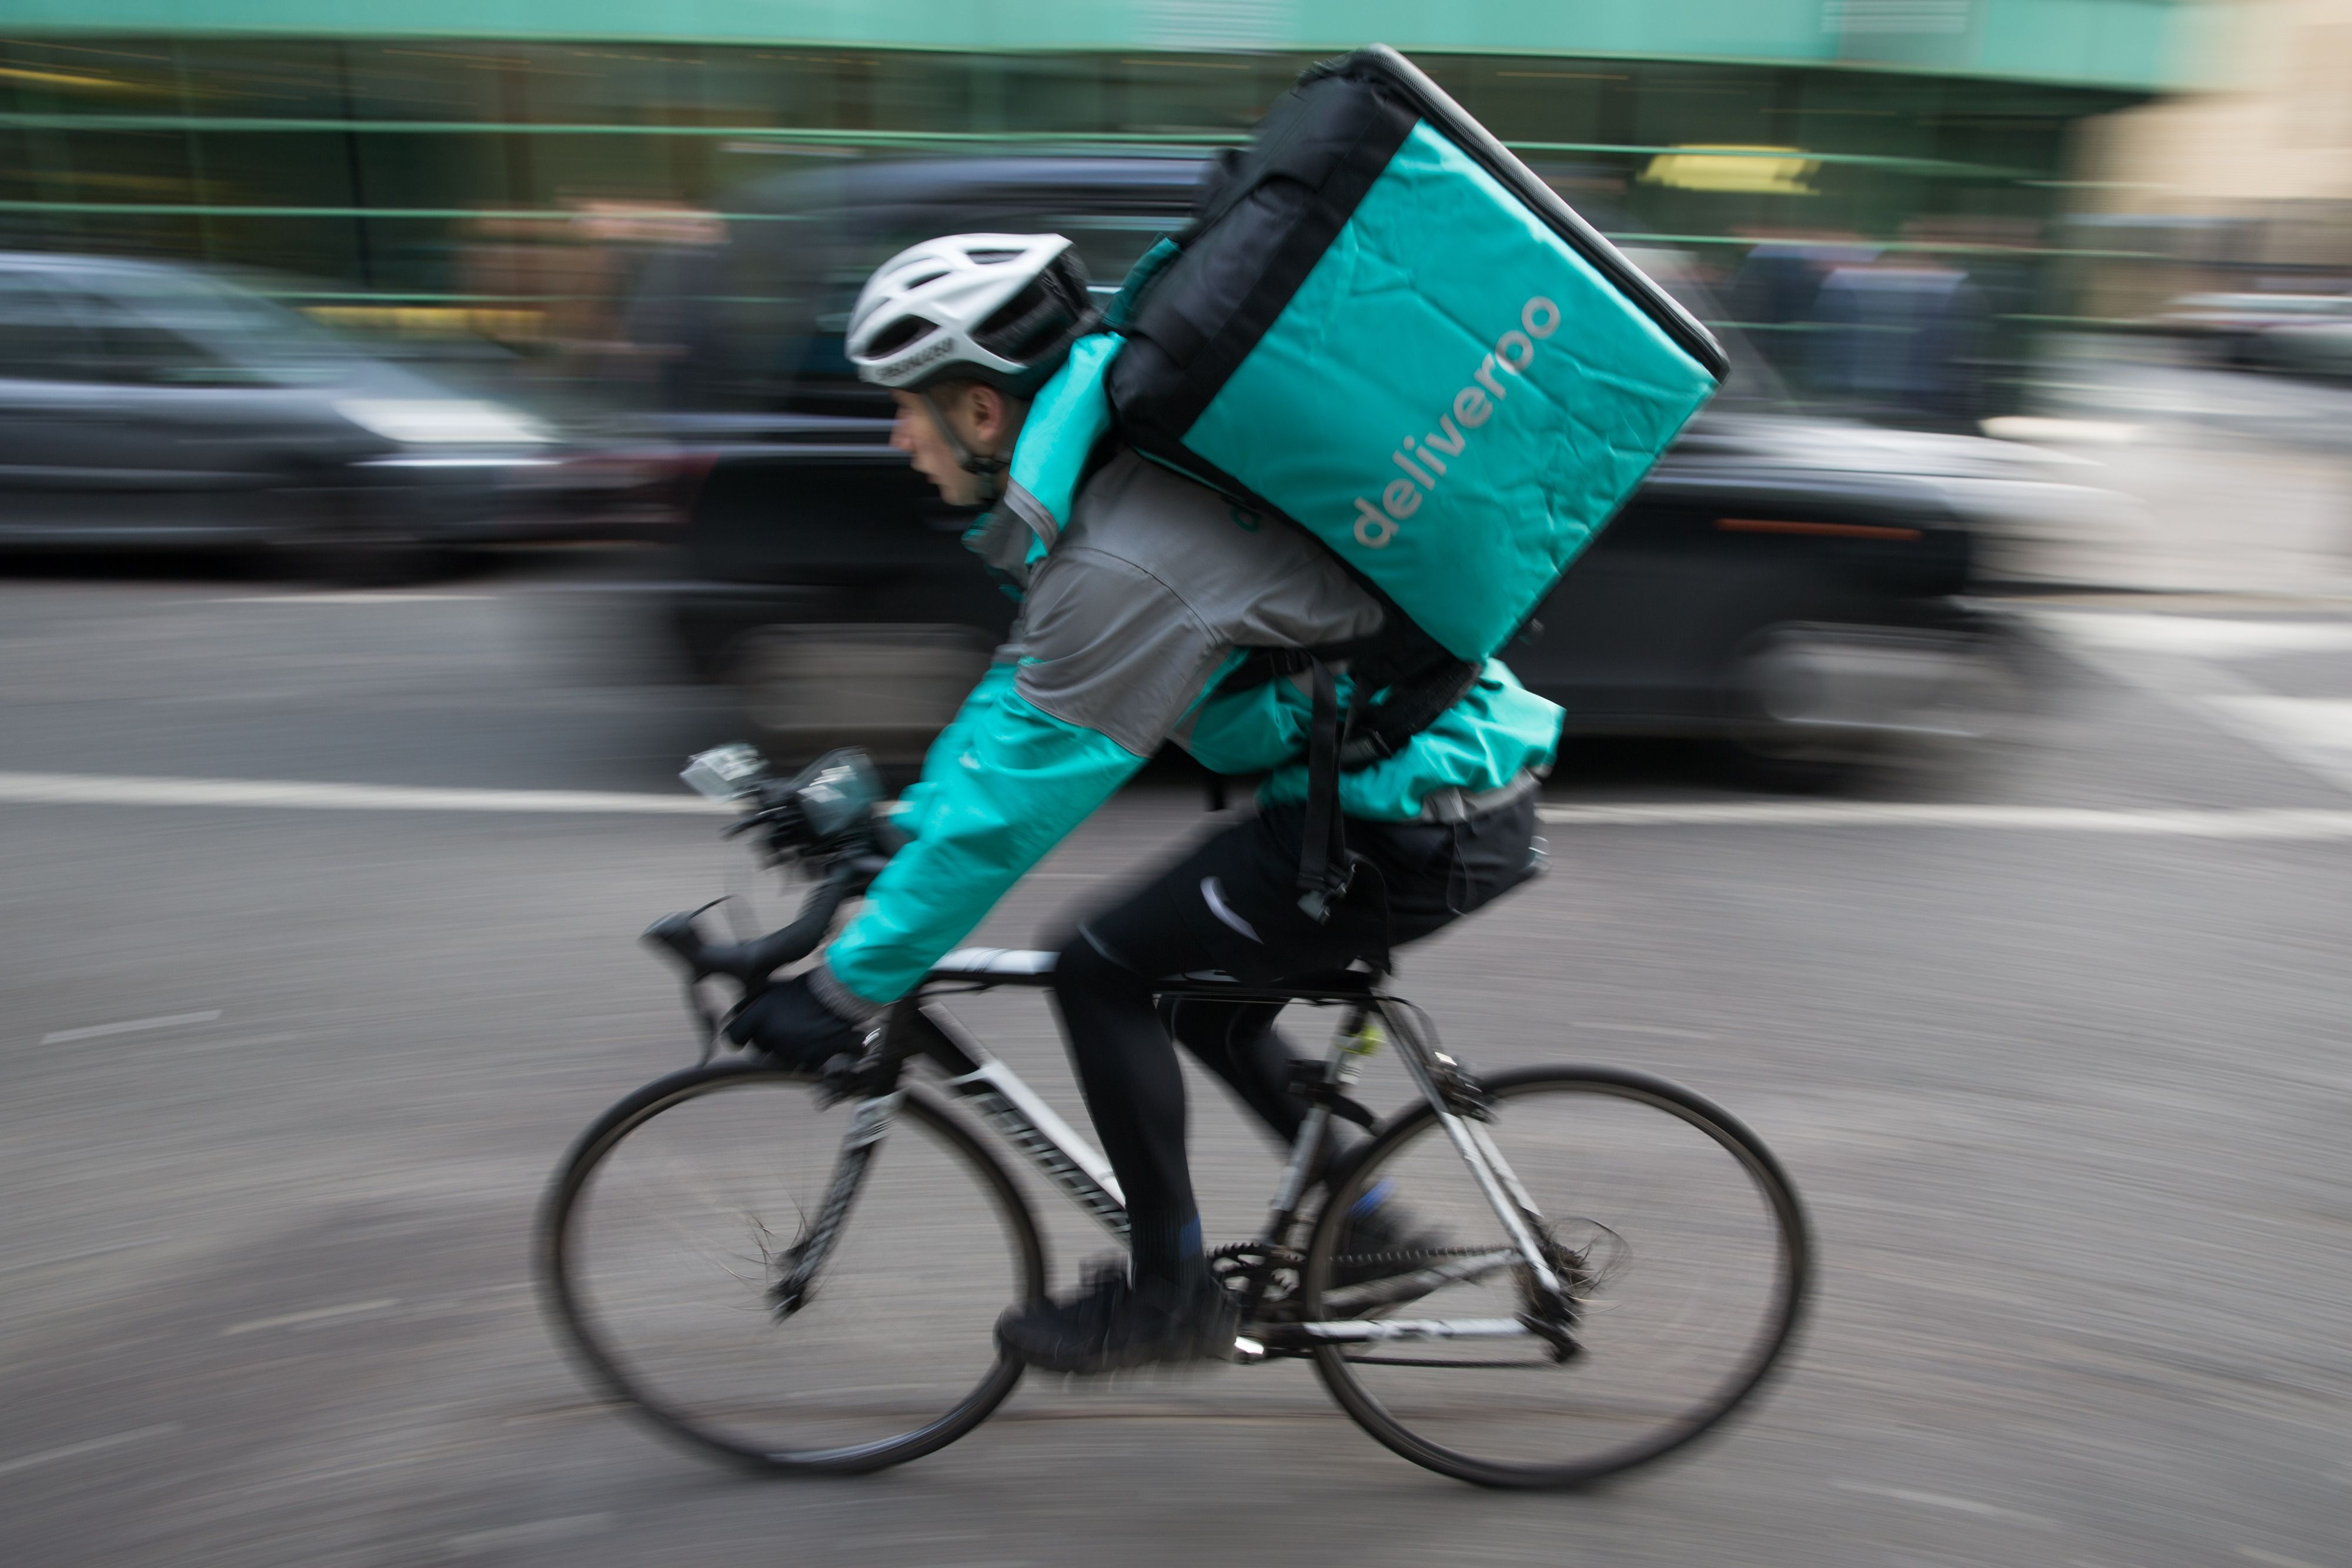 Make sure to check if Deliveroo is available where you live if you're looking to take advantage of the deal